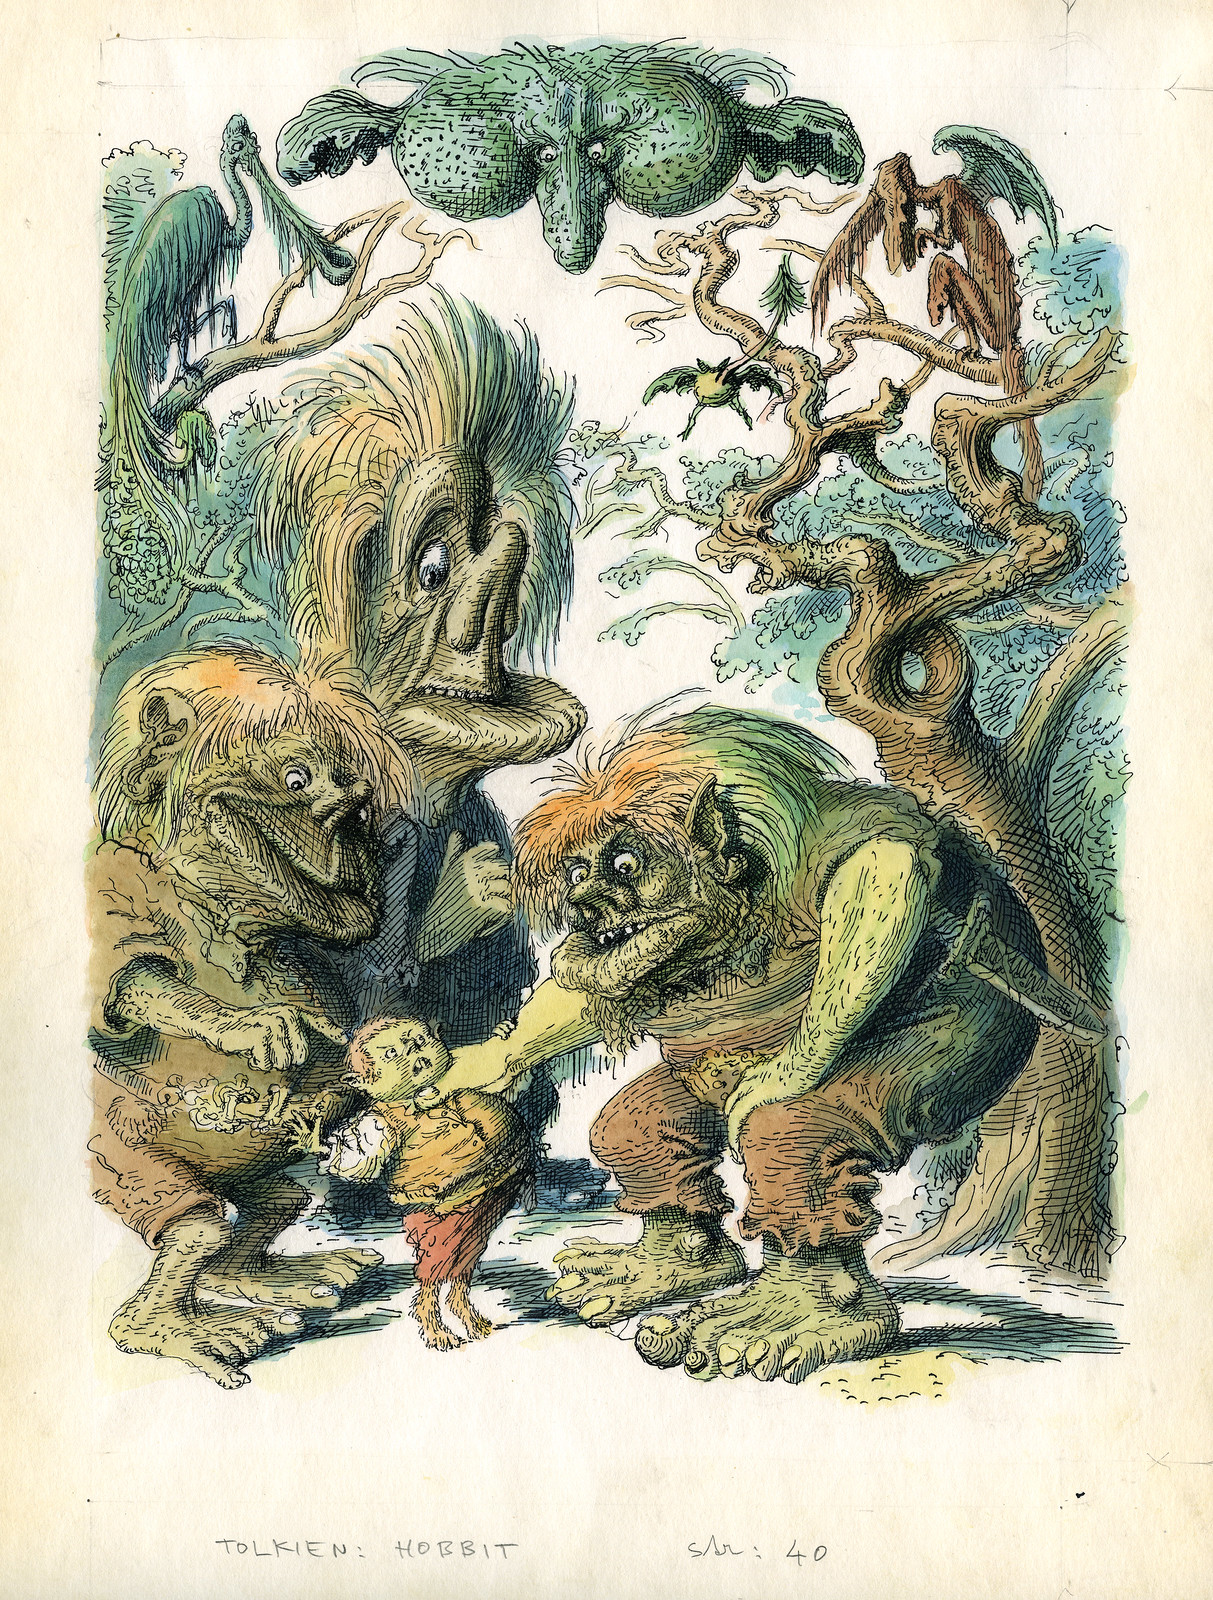 Peter Klucik -The Hobbit, Illustration 16